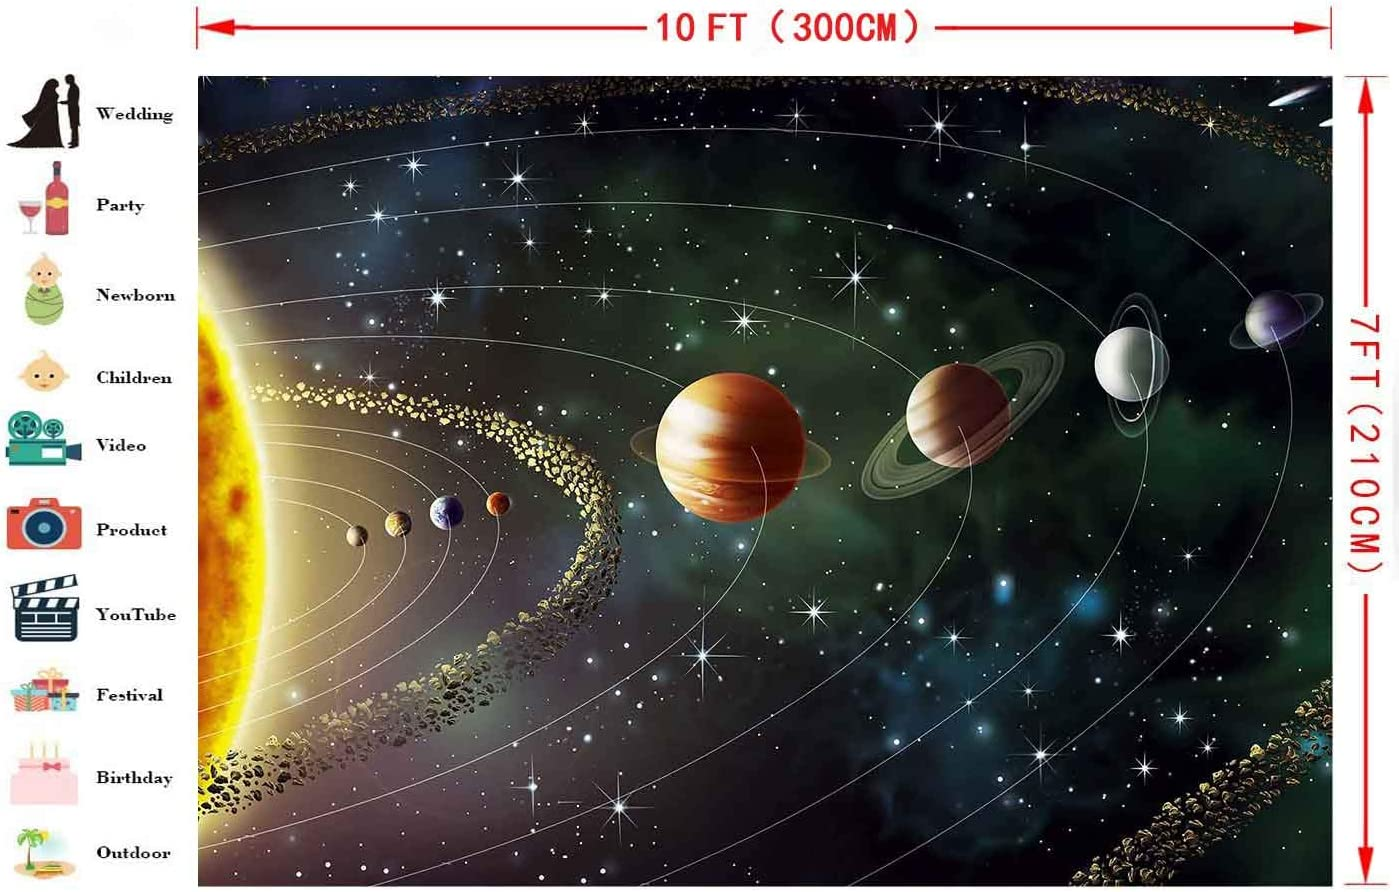 7x10 FT Fantasy Vinyl Photography Backdrop,Science Fiction Outer Space with Planetary Surface Cosmos Graphic Background for Party Home Decor Outdoorsy Theme Shoot Props